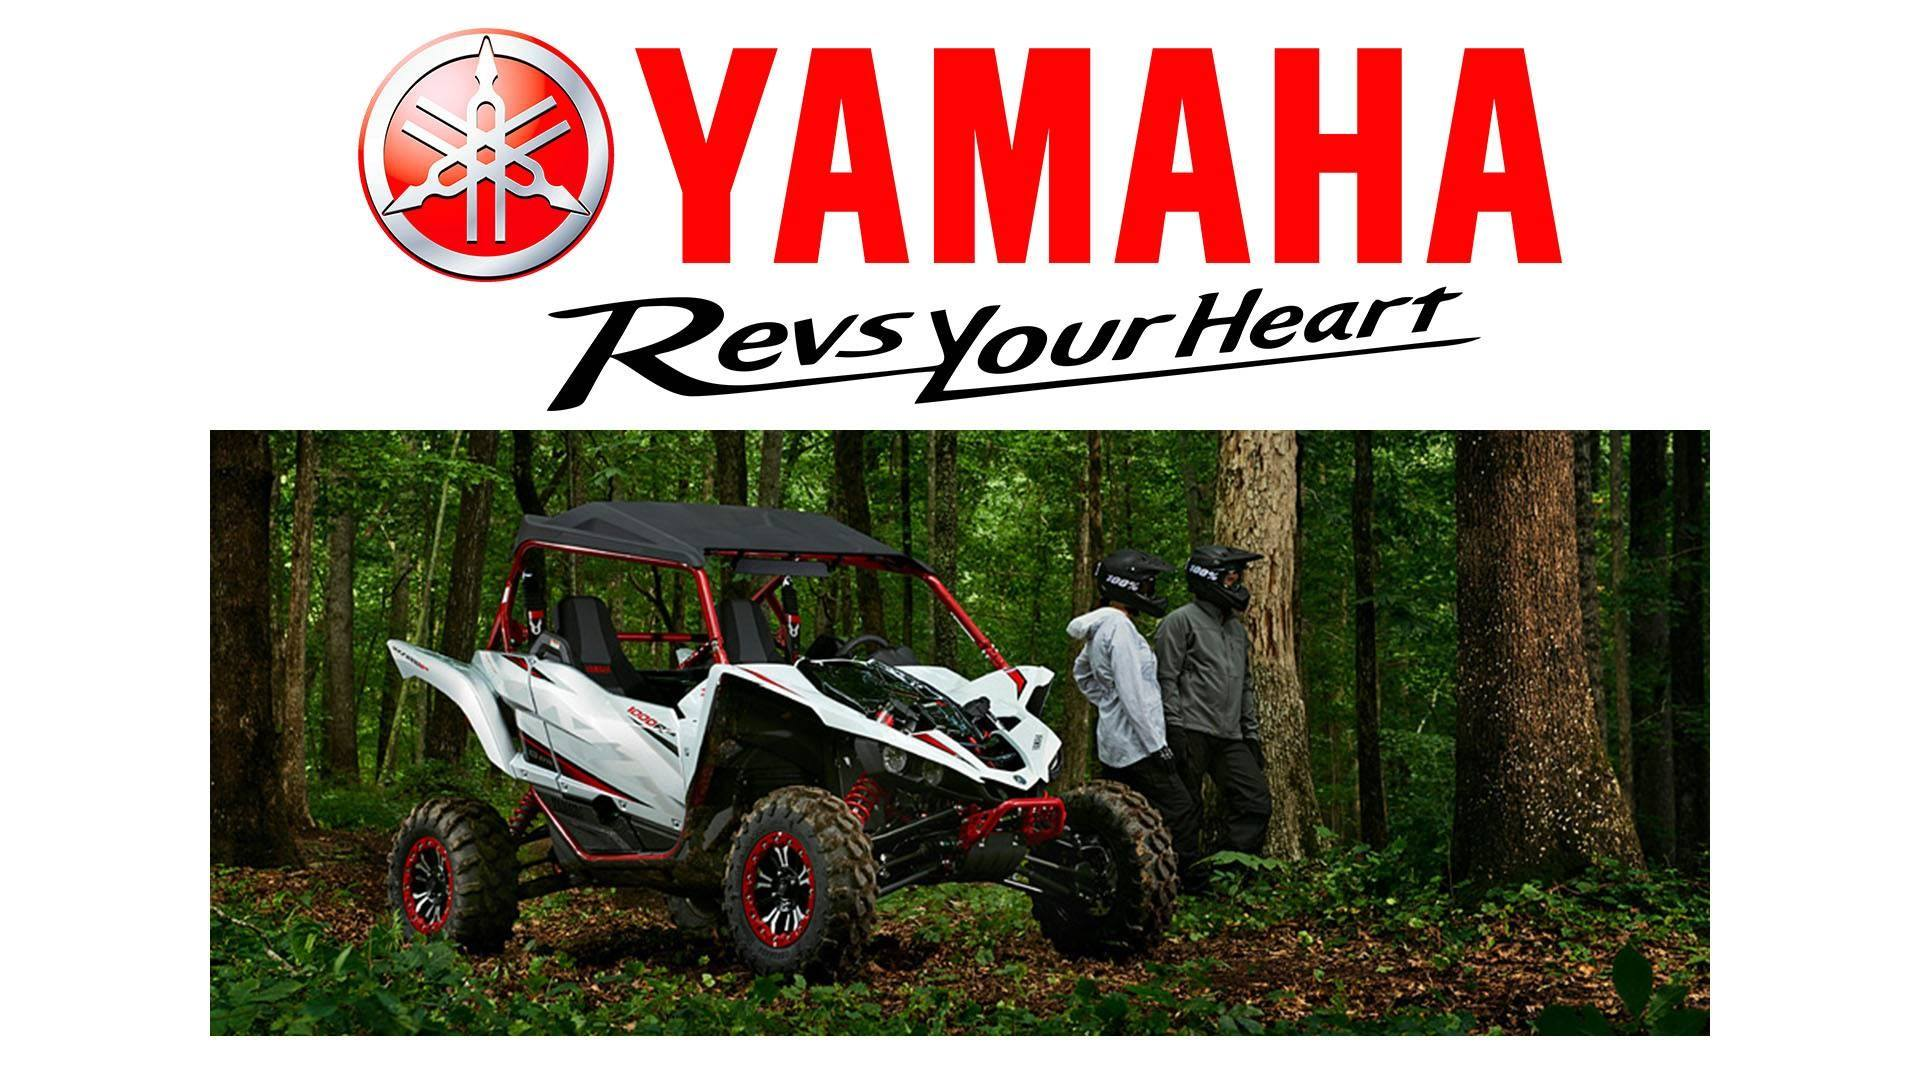 Yamaha Pure Sport SxS - Current Offers and Financing - Customer Cash